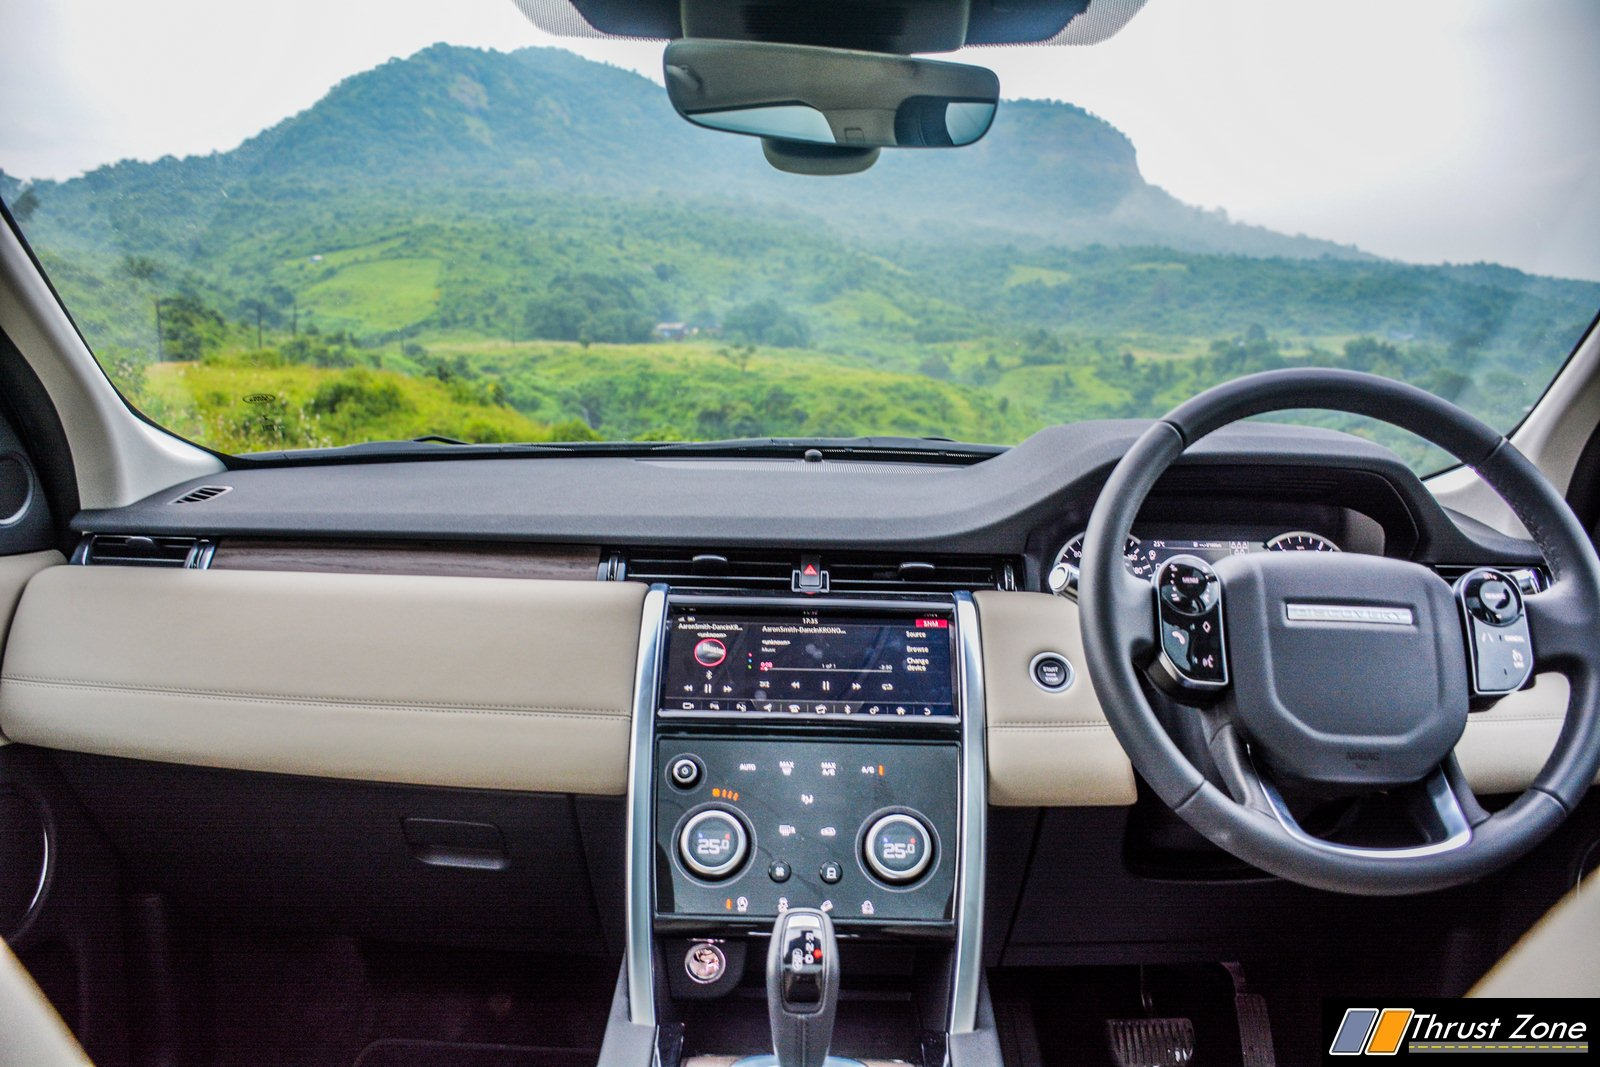 2020-Land-Rover-Discovery-Diesel-India-Review-9